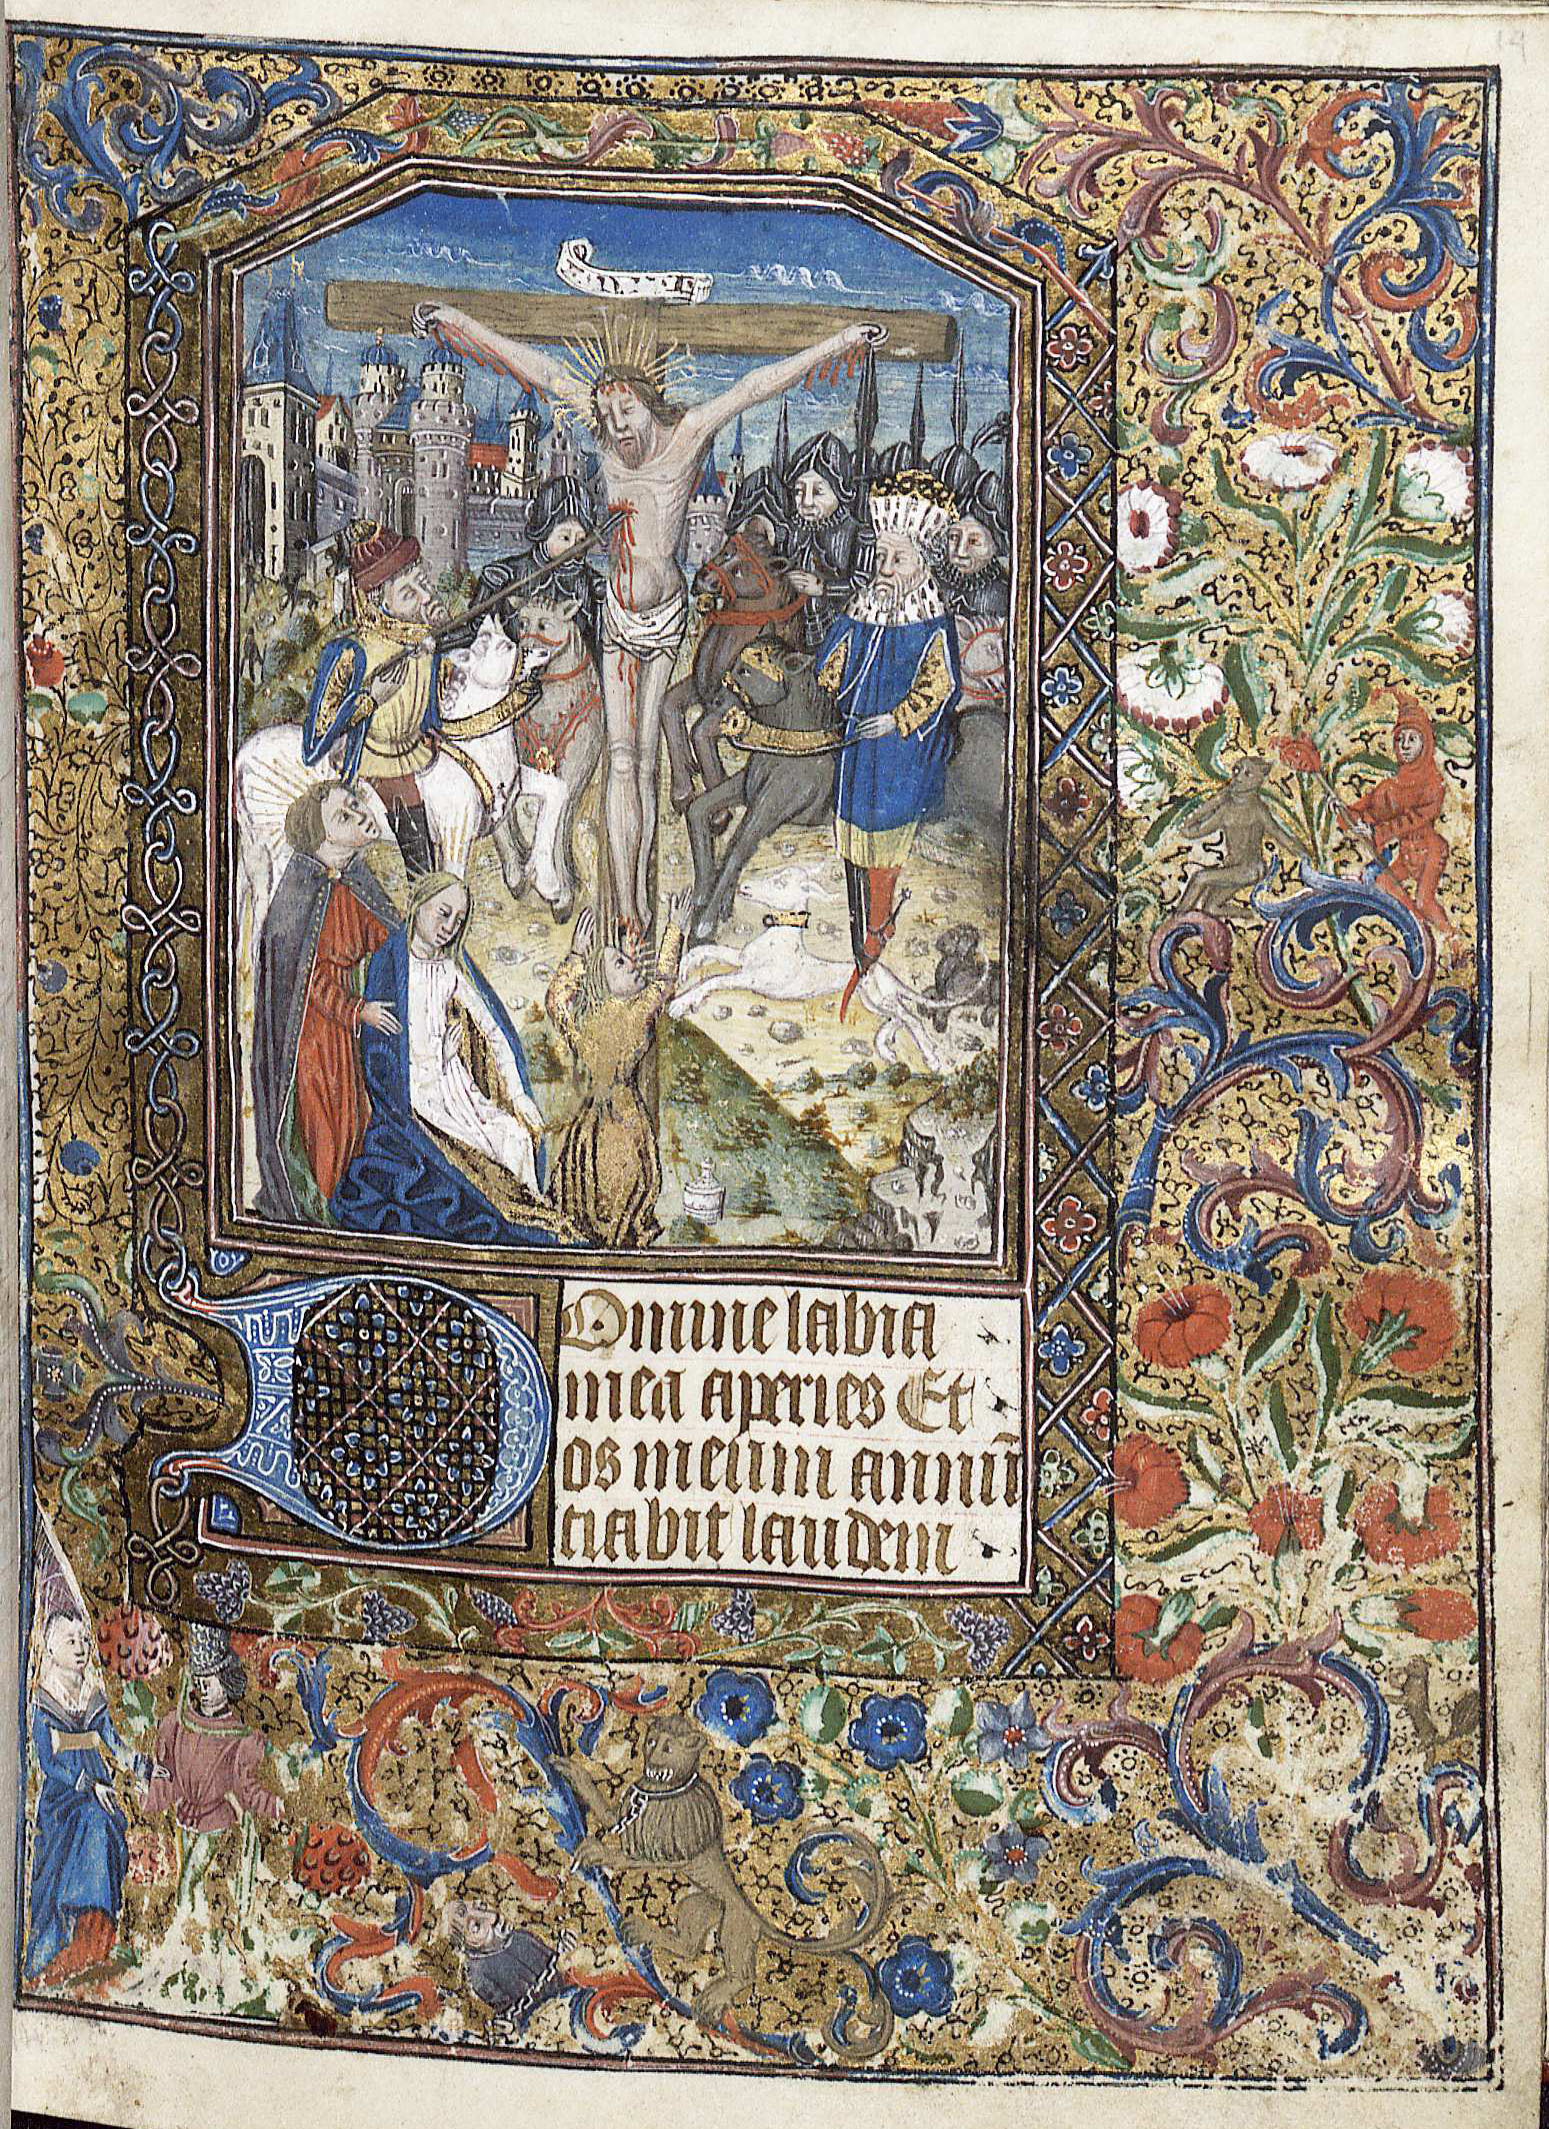 Book of Hours, featuring the hour of the crucifixion (Medieval MSS P. Tracy W. McGregor Library of American History. Image by Petrina Jackson)